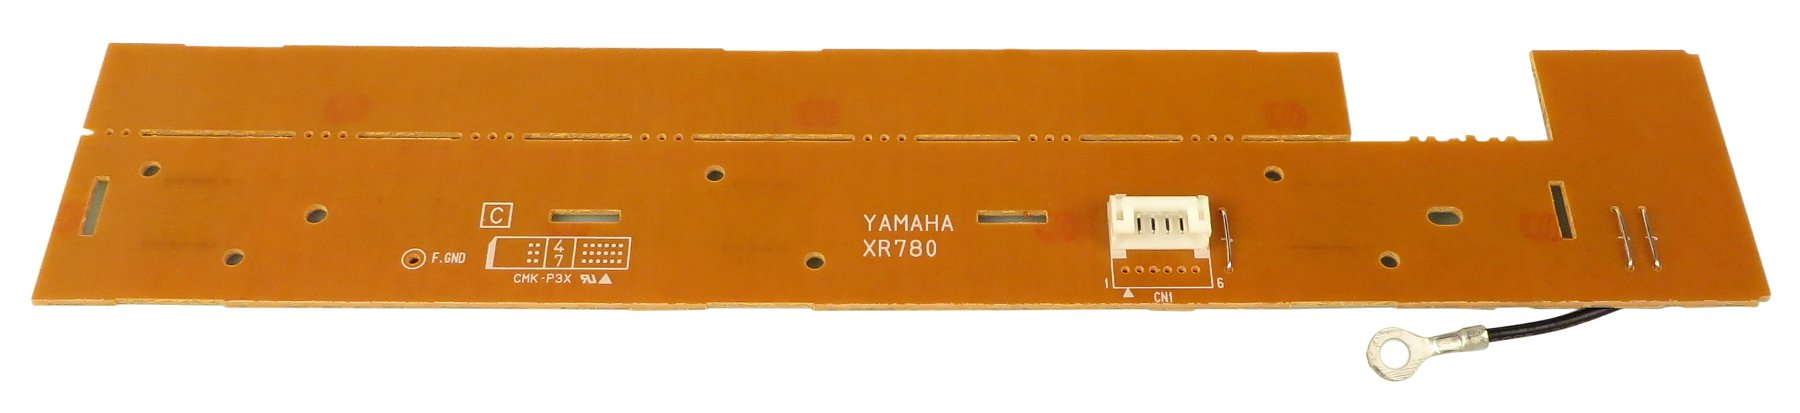 Pedal PCB Assembly for CVP-206, CVP-96, and CVO-98